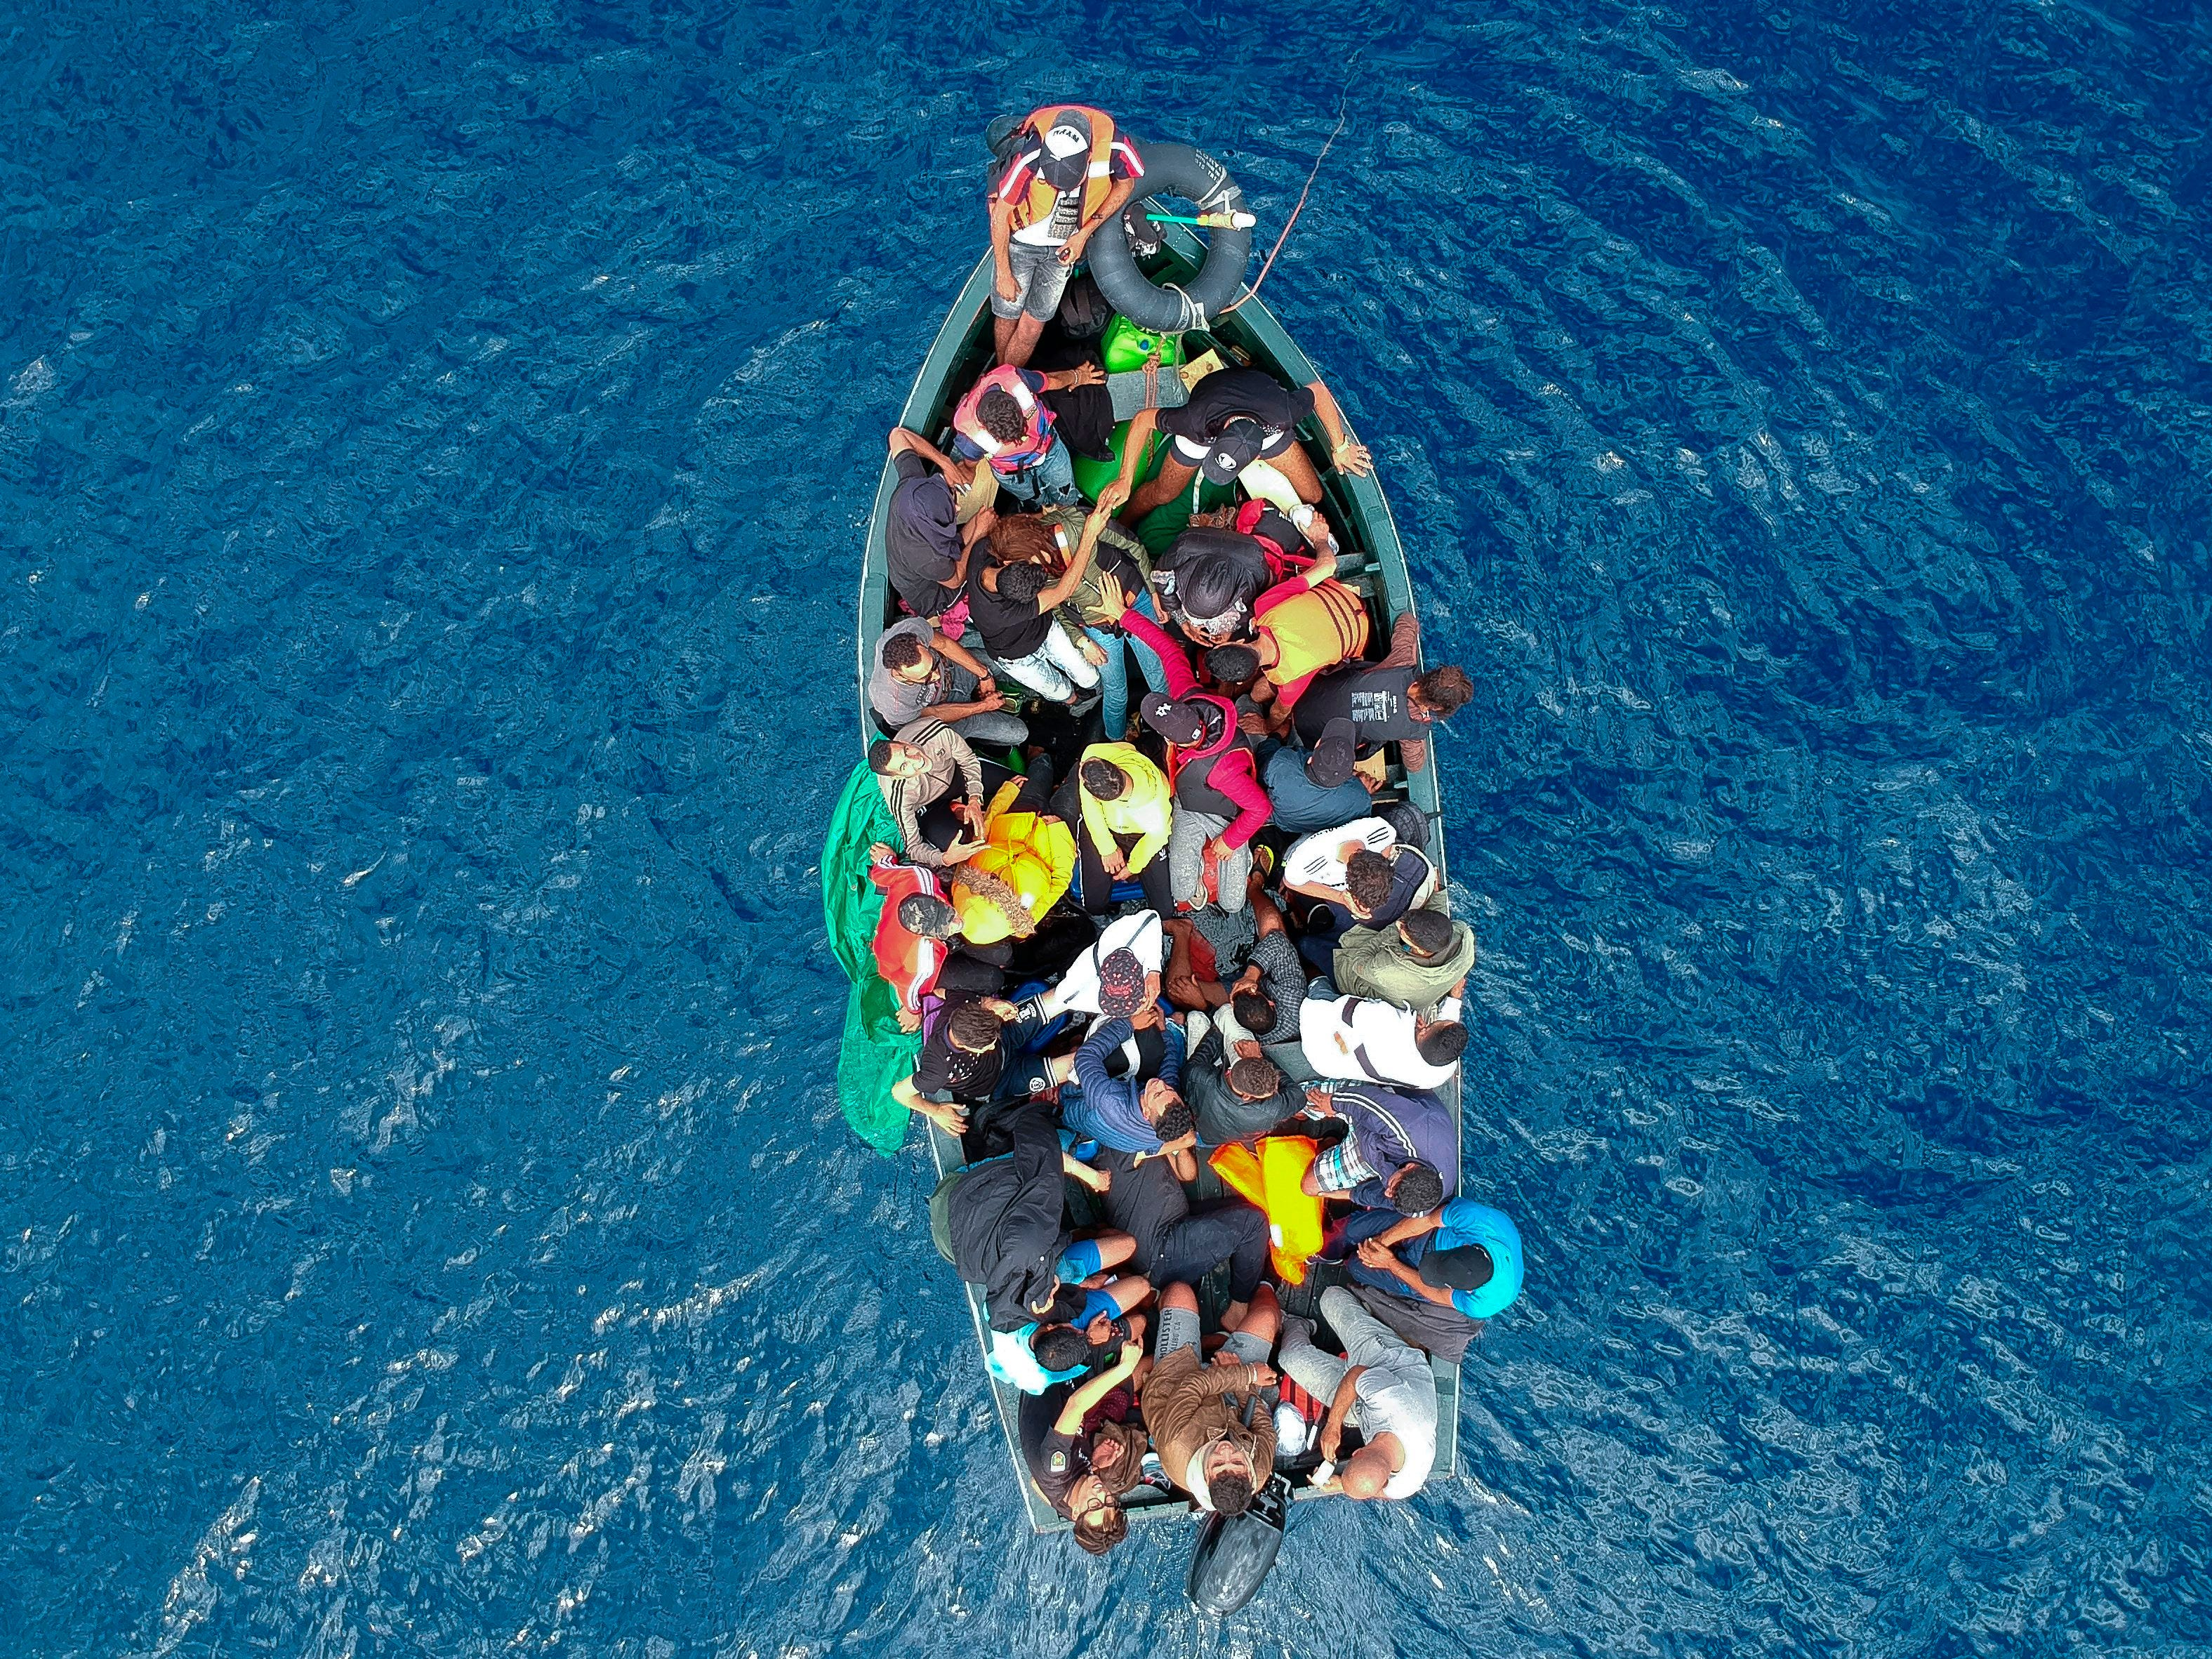 A boat carrying migrants was stranded in the Strait of Gibraltar before being rescued by the Spanish Guardia Civil and the Salvamento Maritimo sea search and rescue agency on September 8, 2018.